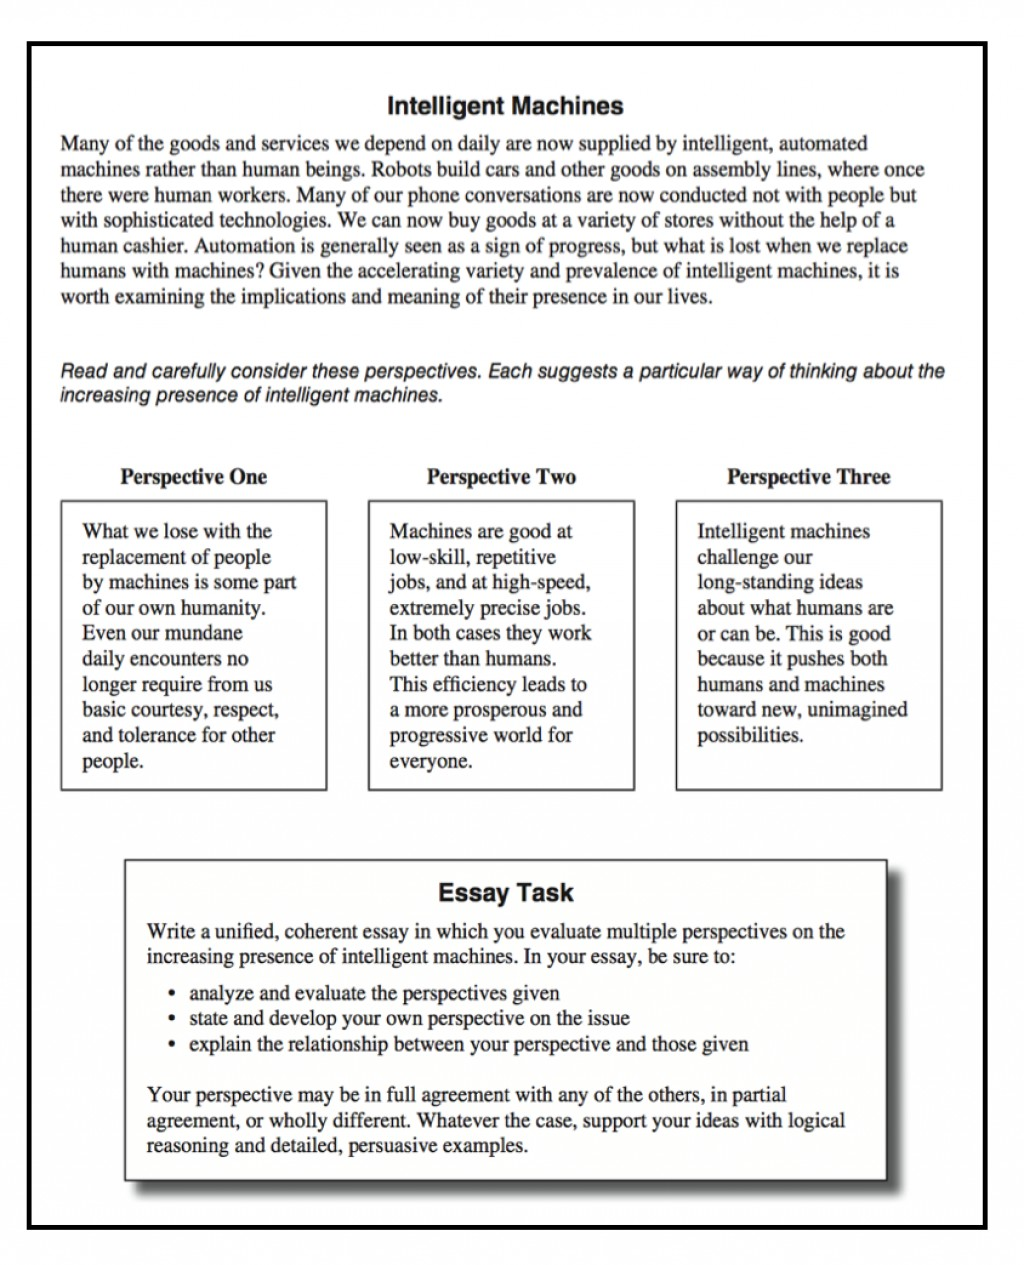 019 Screen Shot At Sat Essay Format Breathtaking Guidelines Exam Paper Form Large